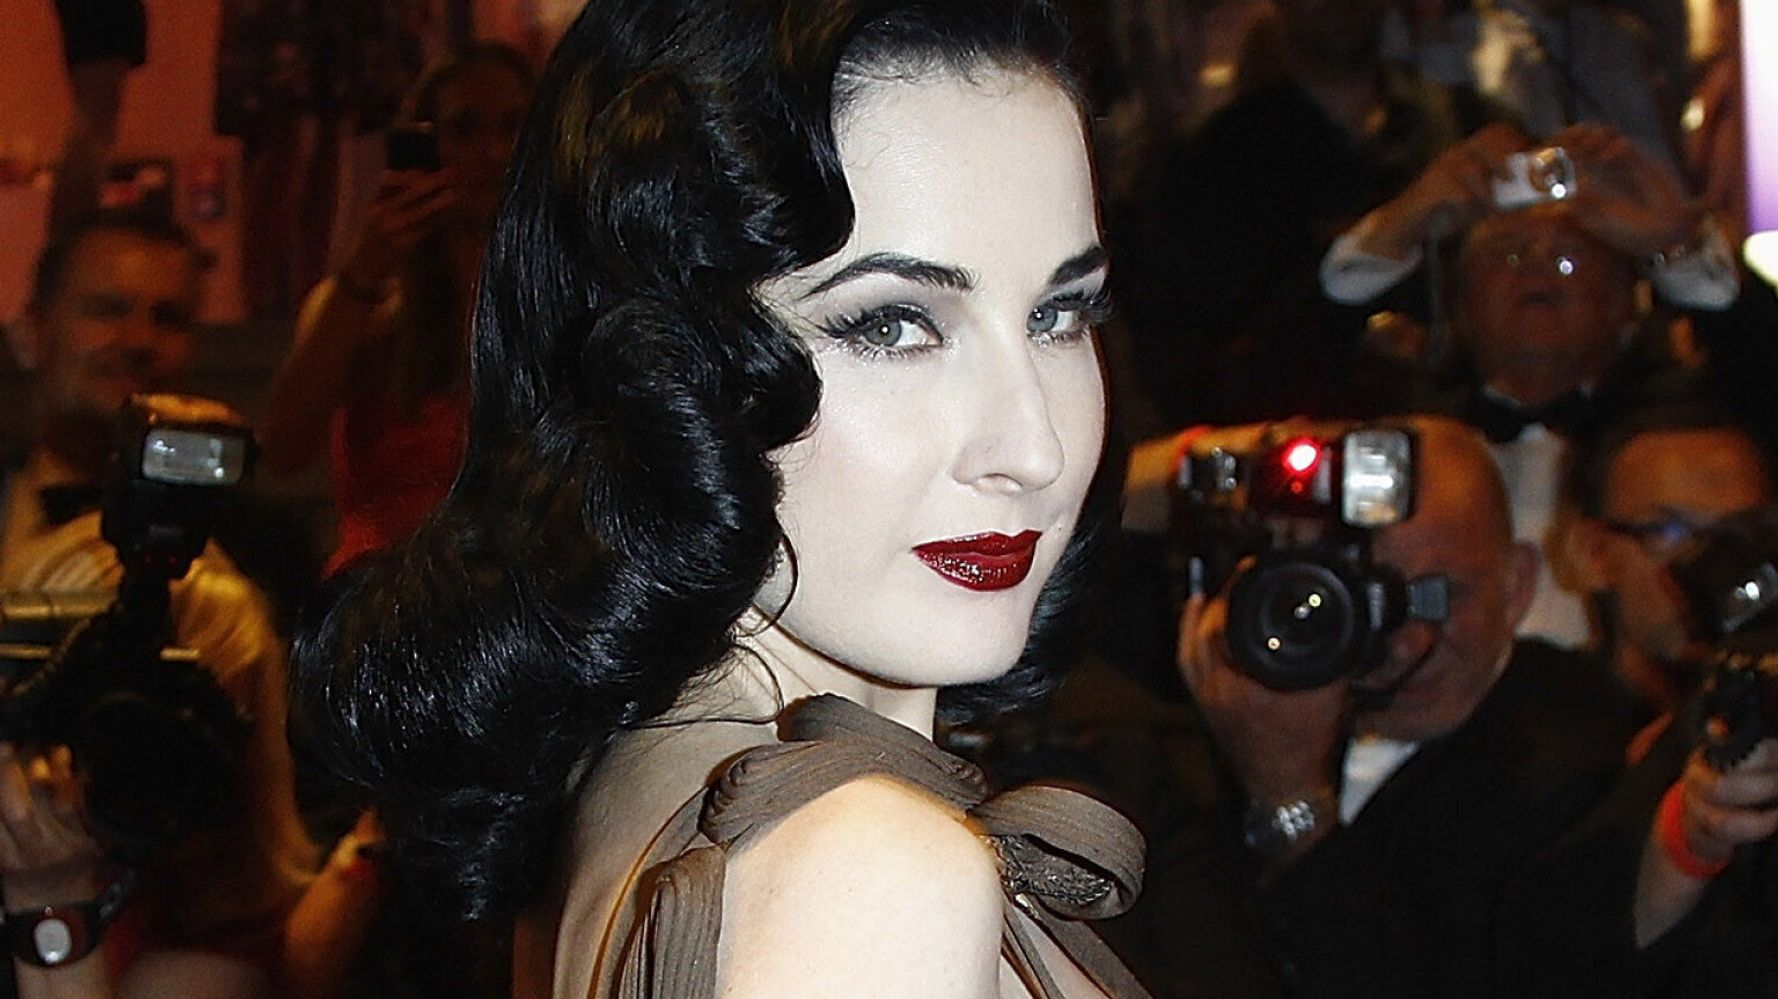 Why Dita Von Teese S Cat Made Her Late To The Party